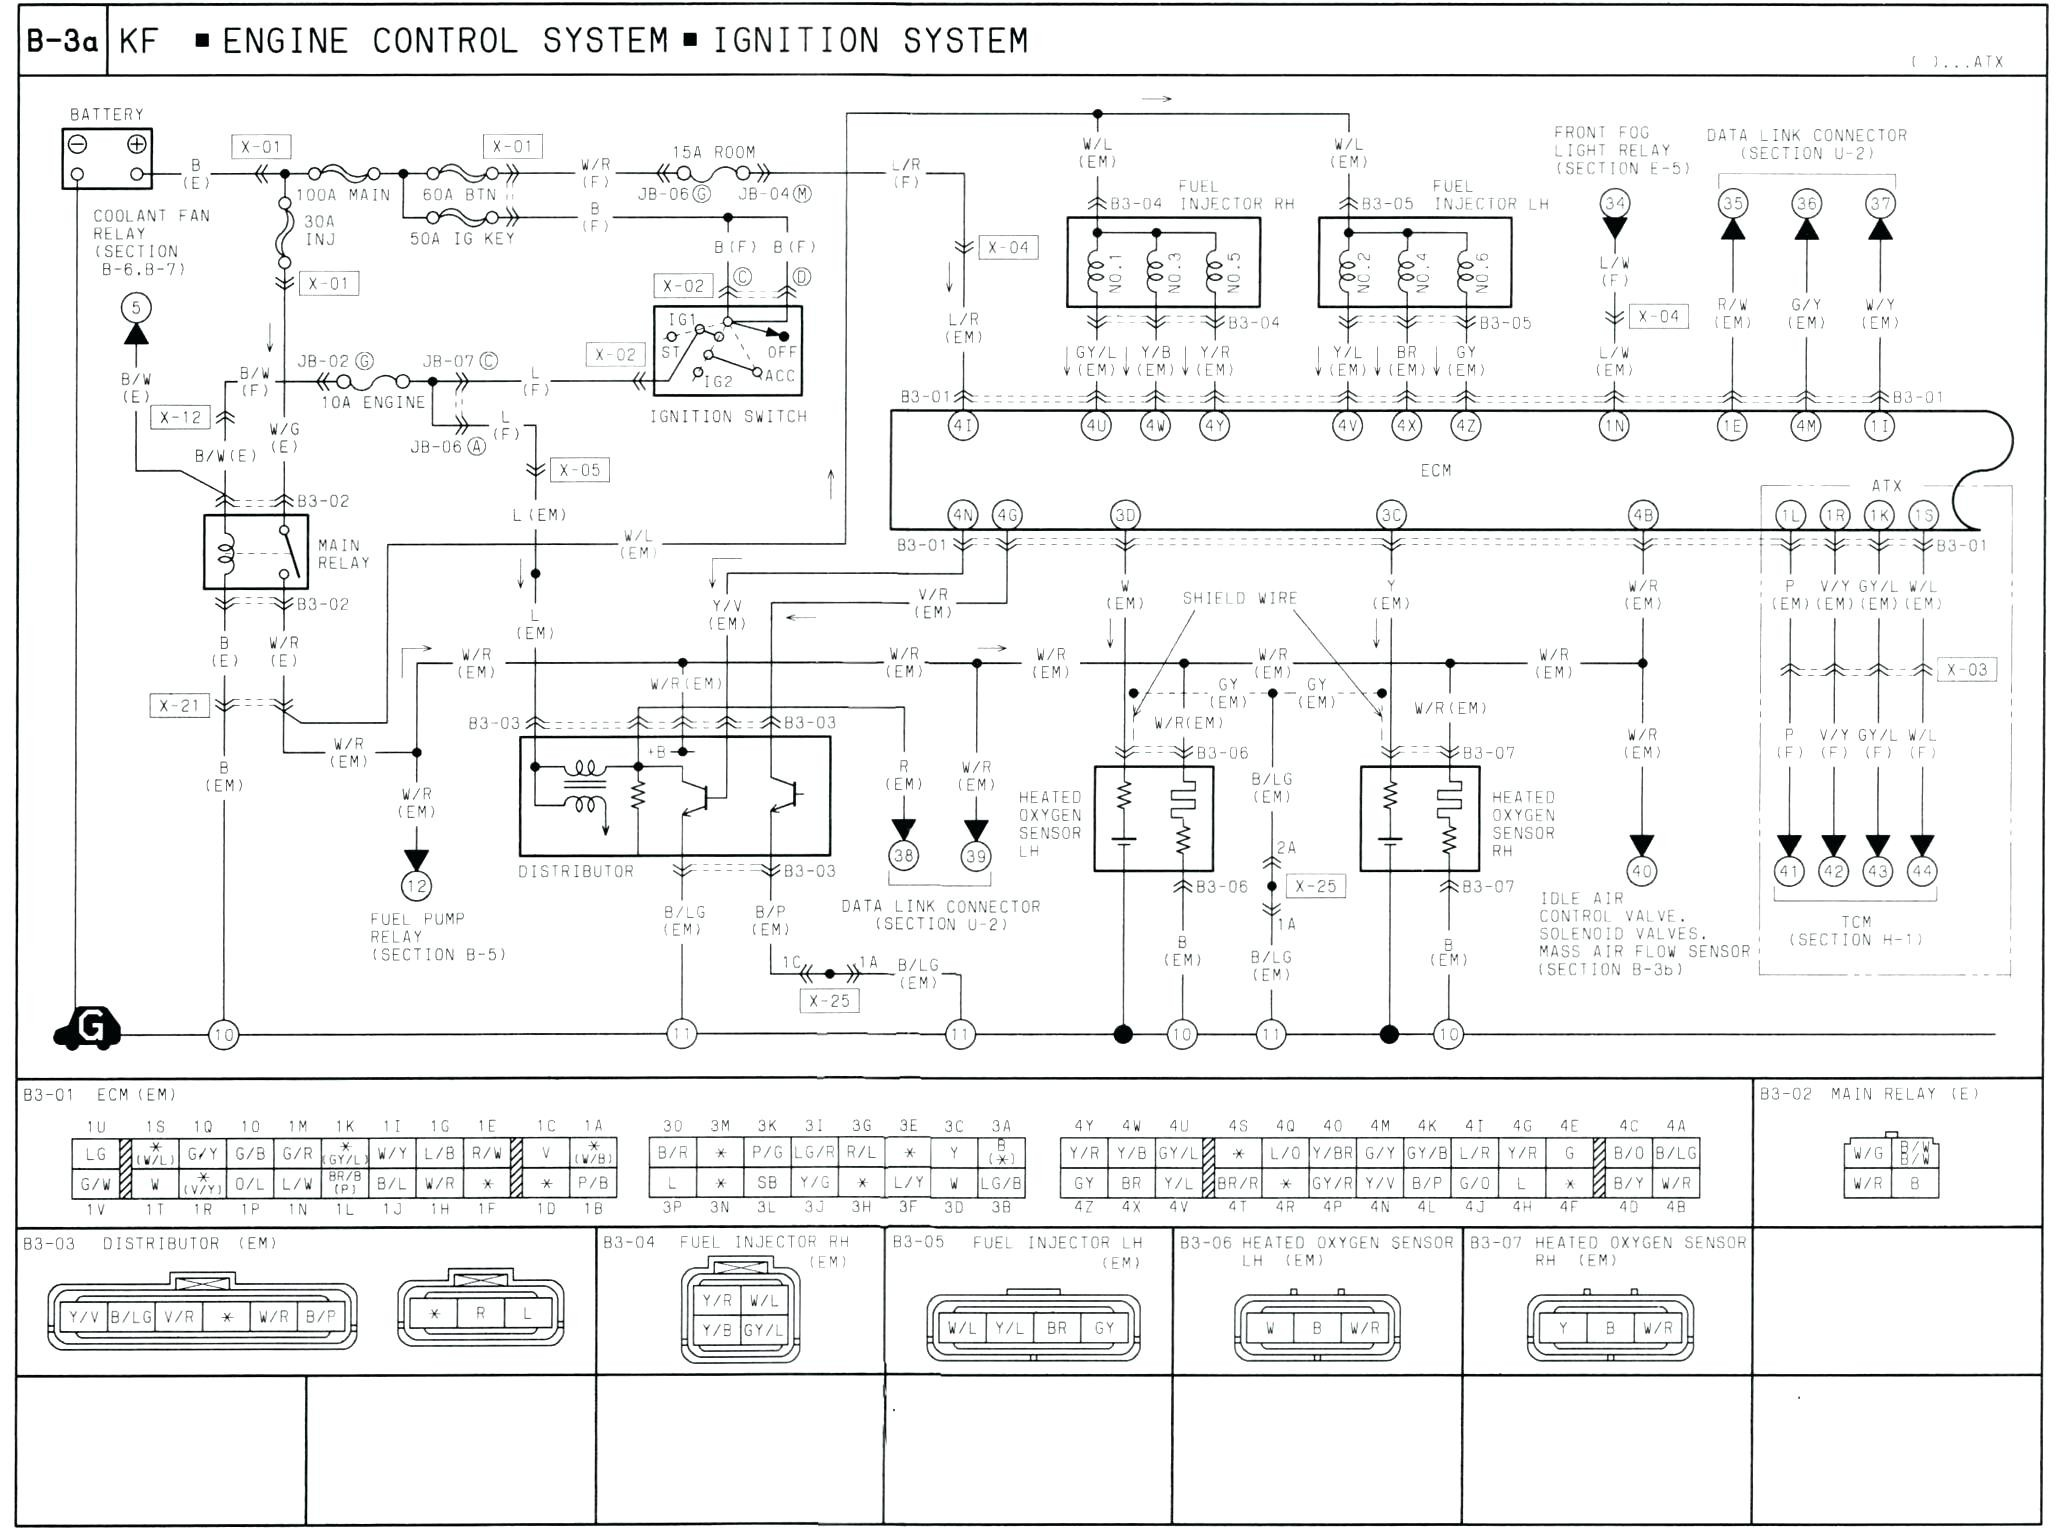 Mazda 2 2008 Fuse Box Location Wire Center 1990 626 Diagram Clean Wiring Diagrams U2022 Rh Geekronomicon Com 3 B2300